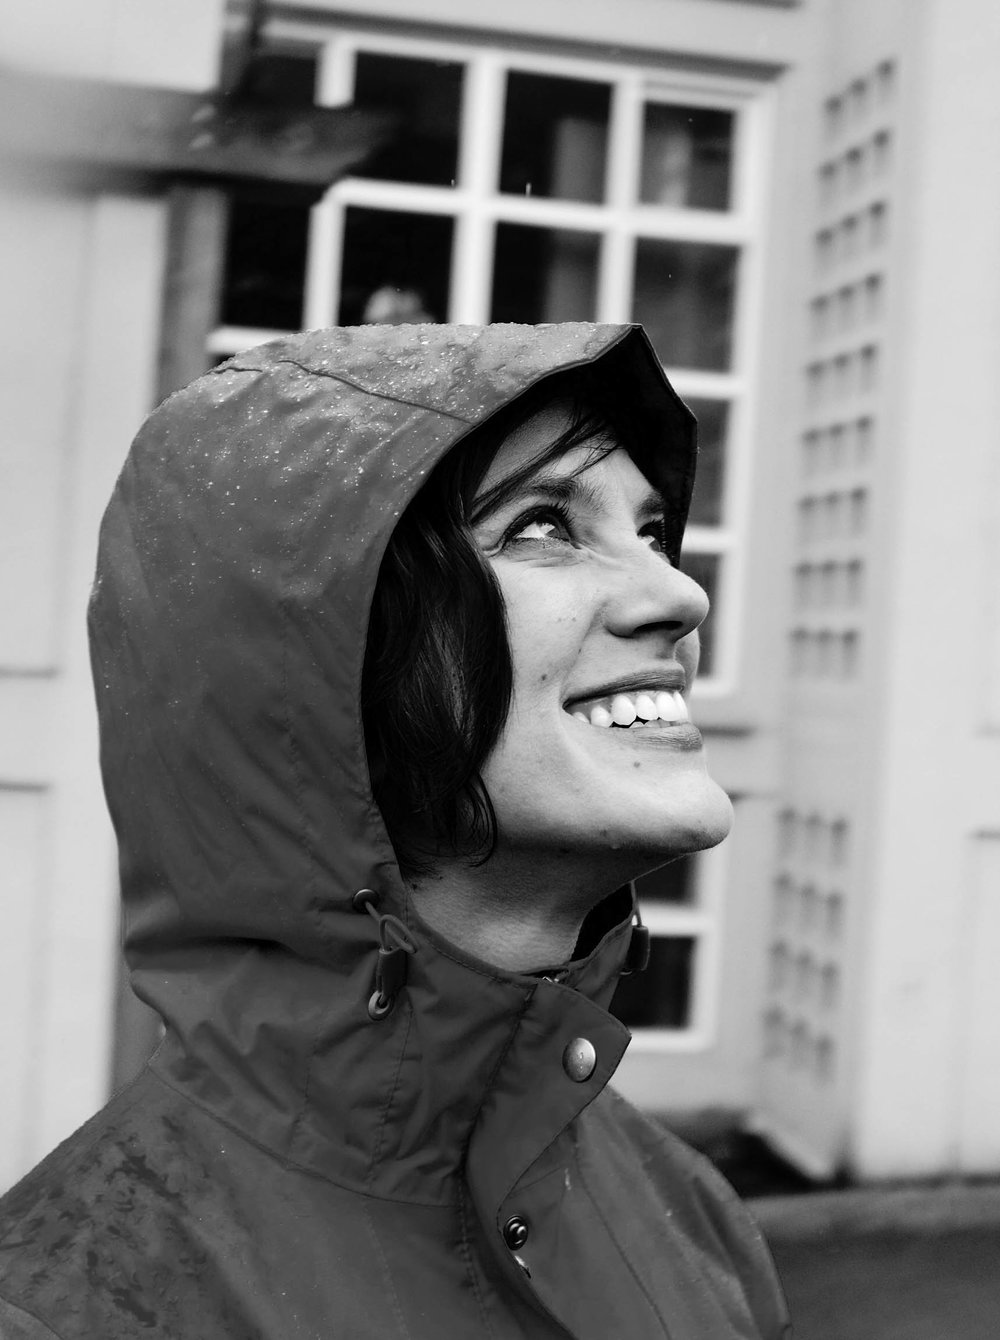 portrait pnw woman rain happy picture photograph